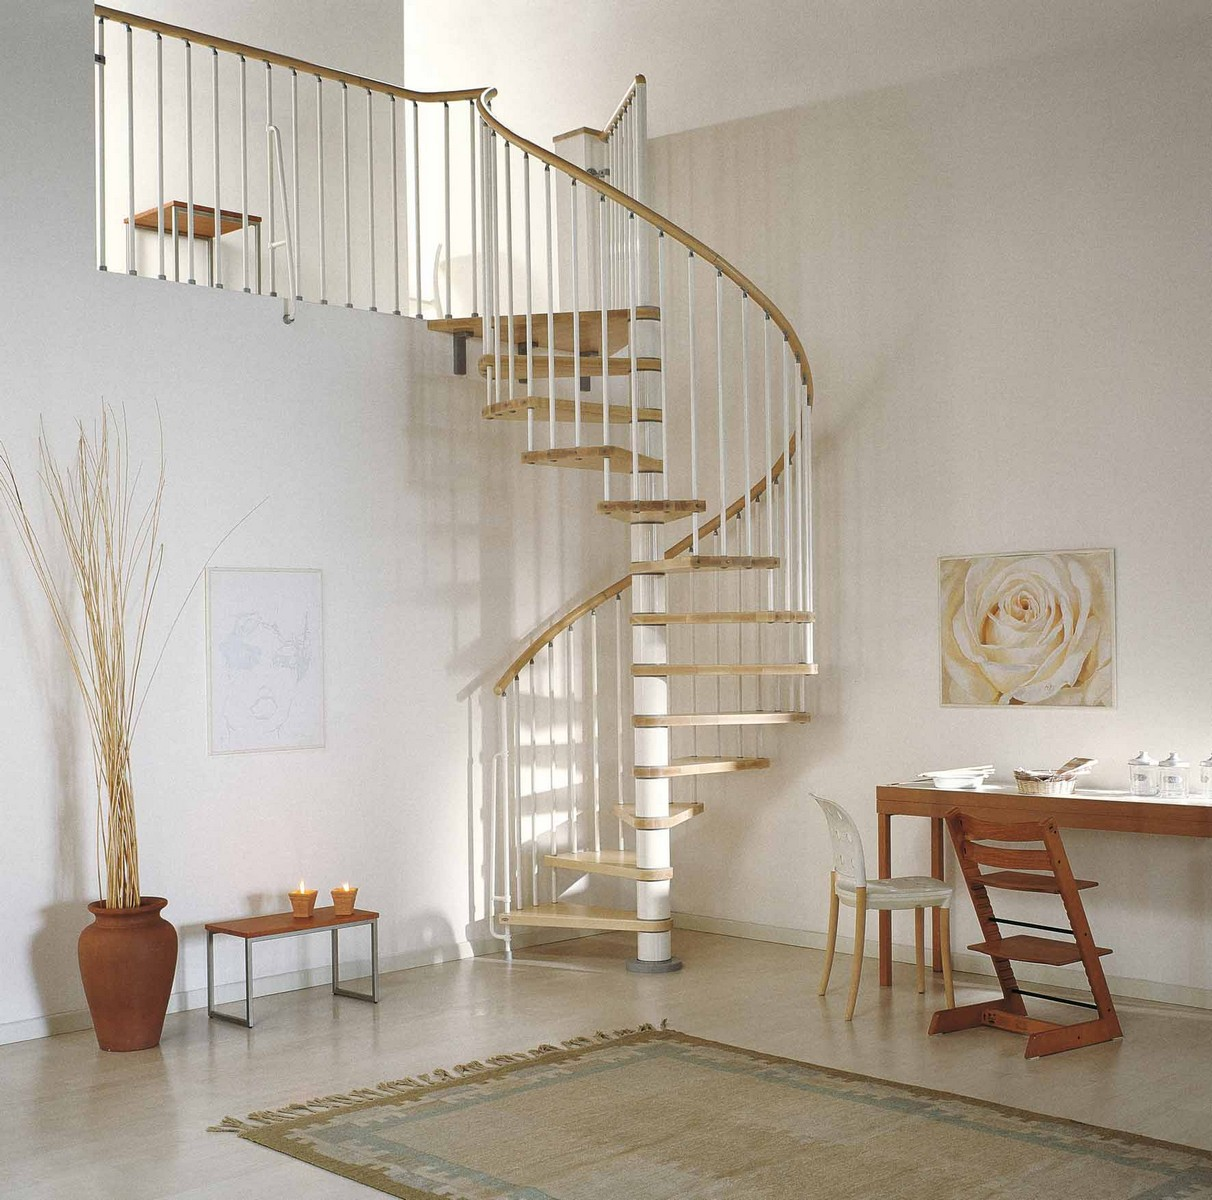 Beau Phoenix Wood Tread Spiral Staircase Kit   Metal, Steel And Wood Spiral  Staircase   Fontanot